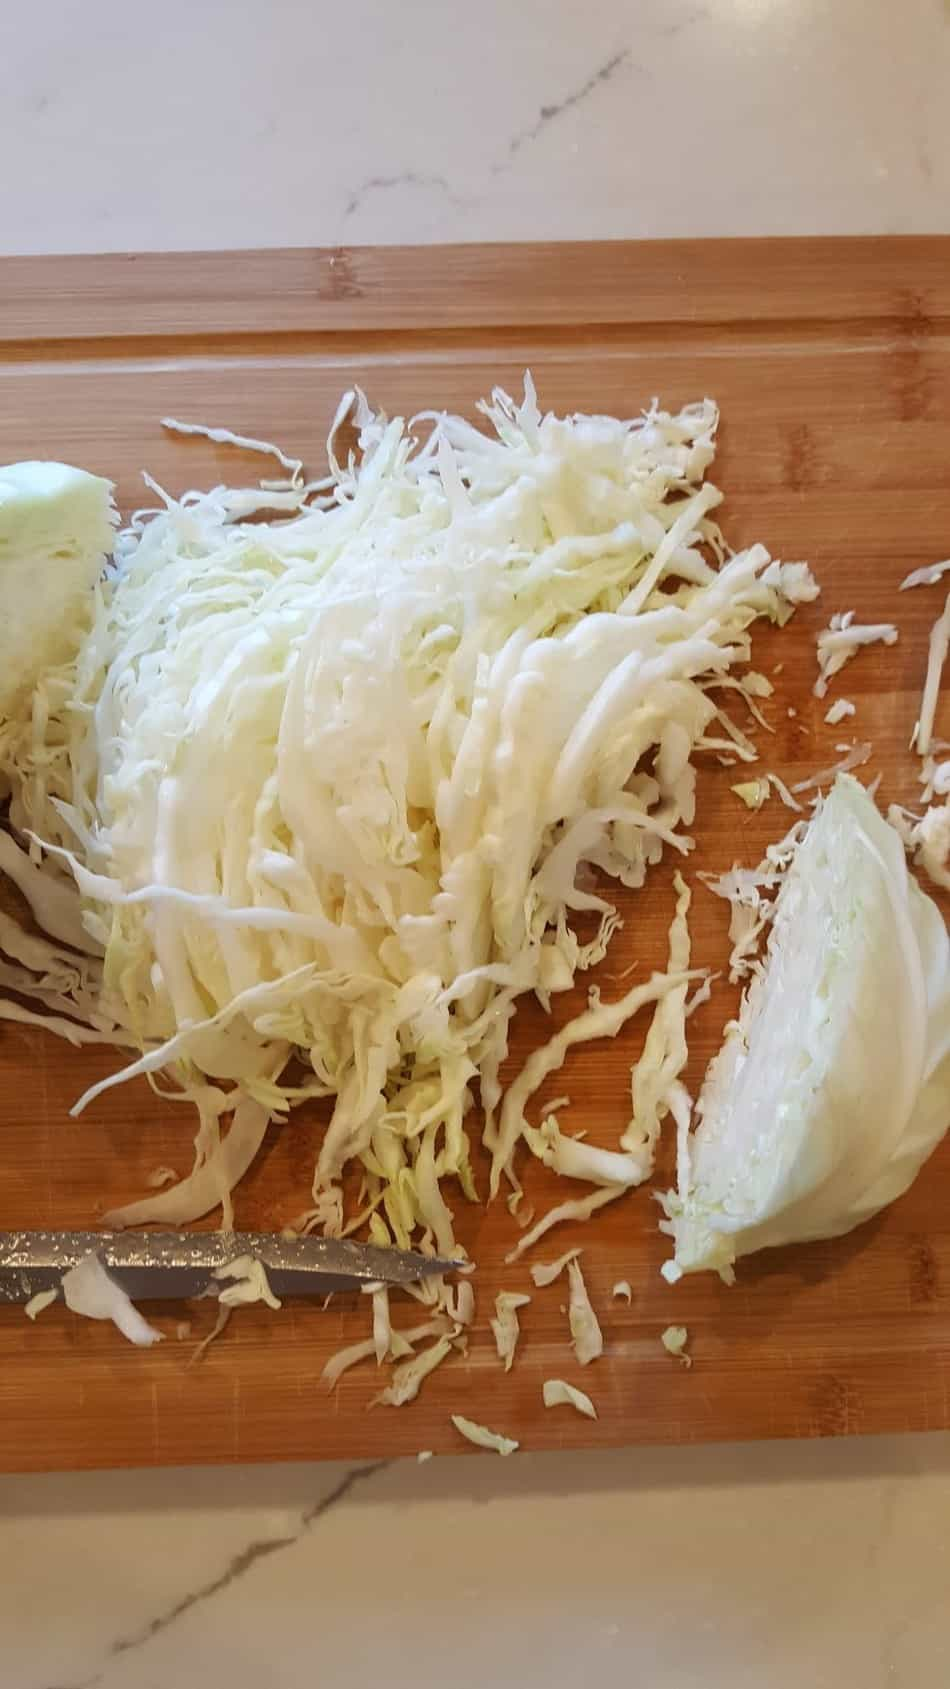 How to Make Fermented Sauerkraut